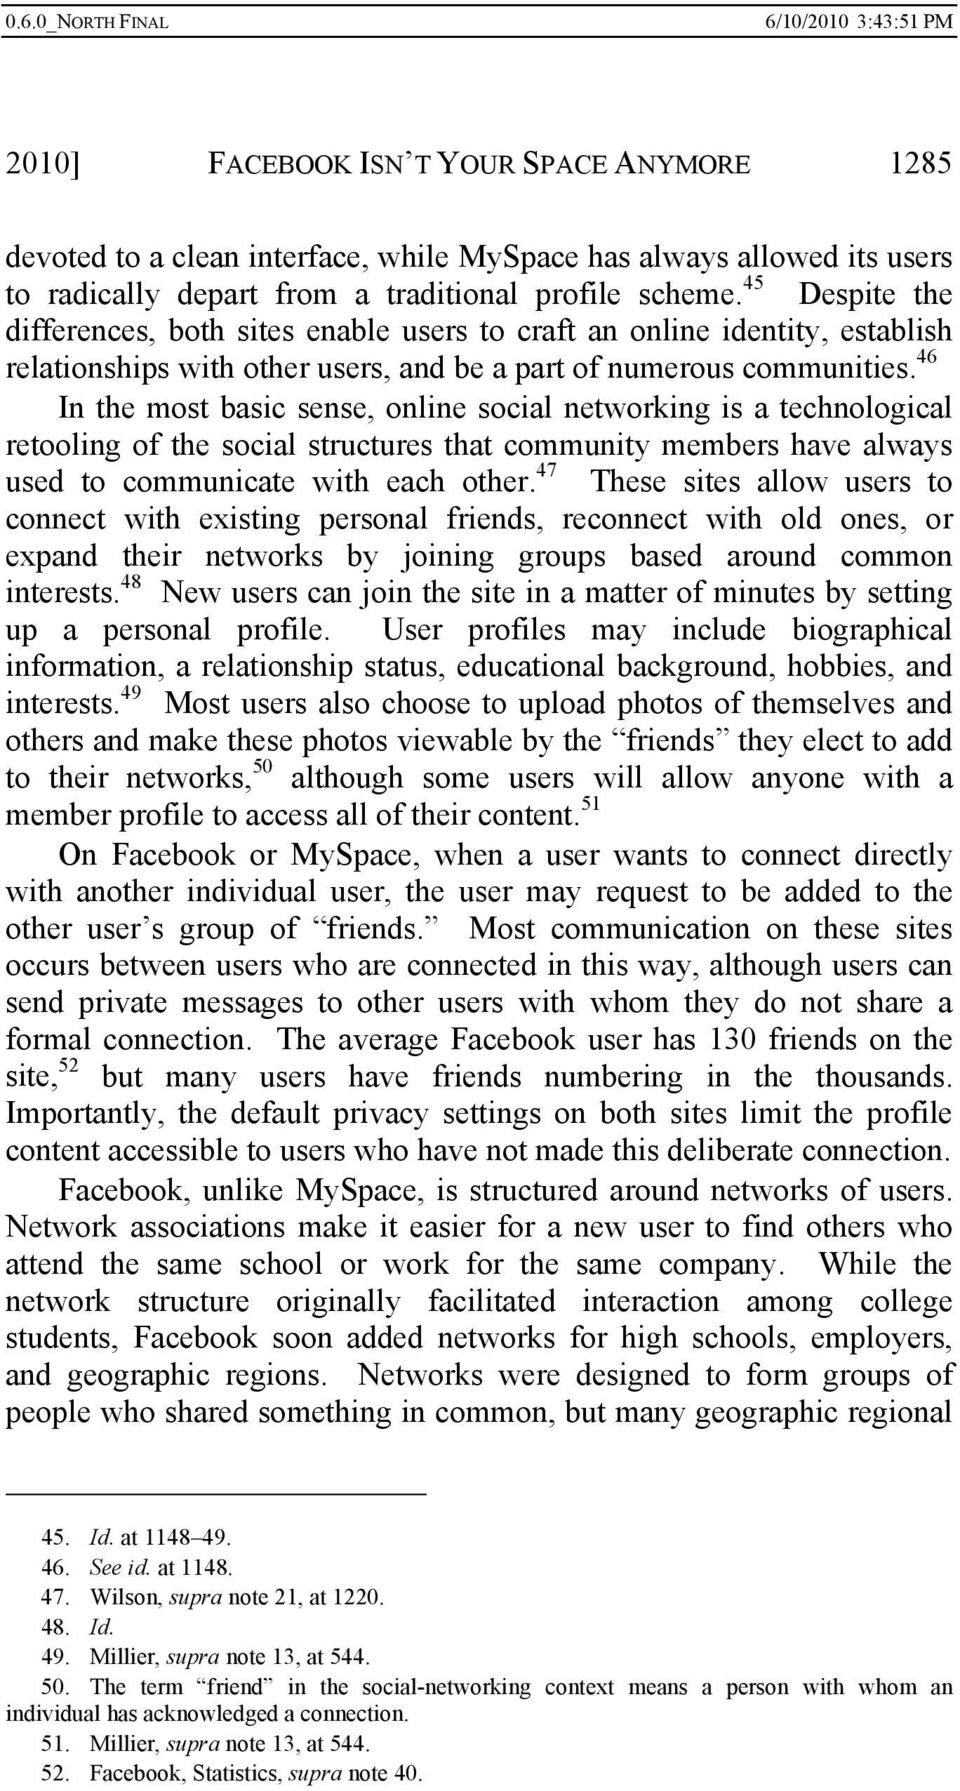 46 In the most basic sense, online social networking is a technological retooling of the social structures that community members have always used to communicate with each other.